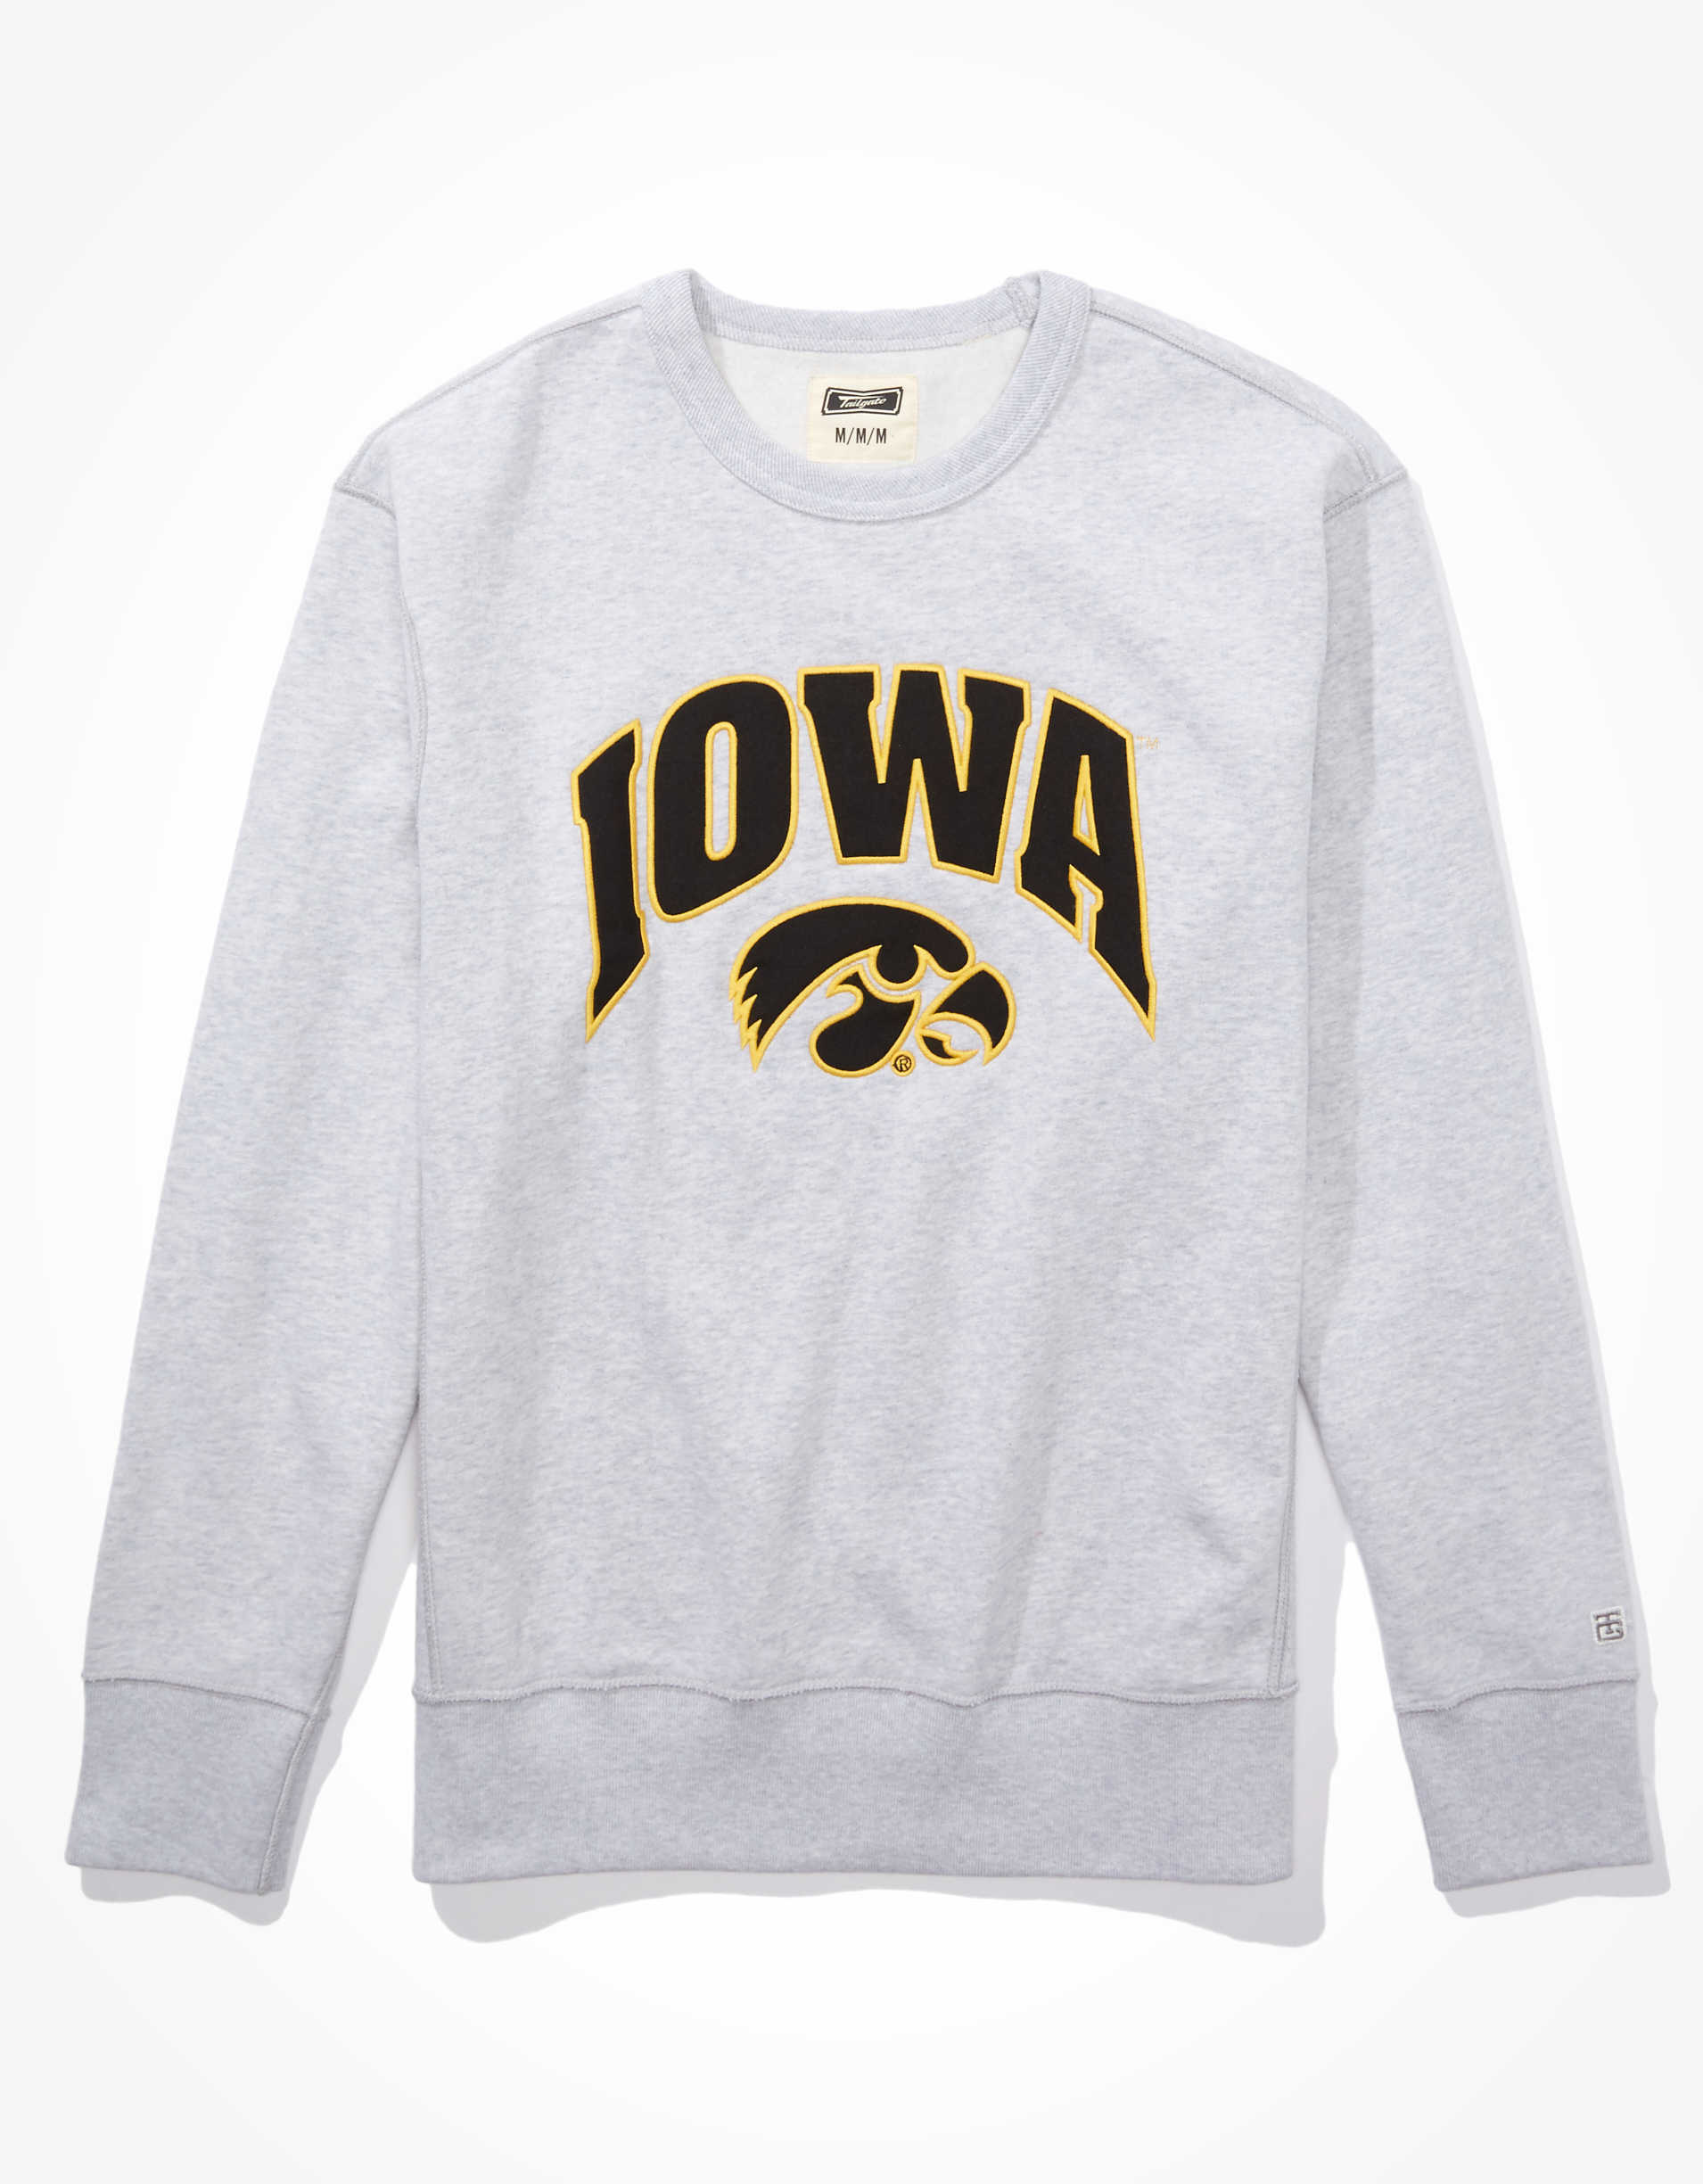 Tailgate Men's Iowa Hawkeyes Crew Neck Sweatshirt